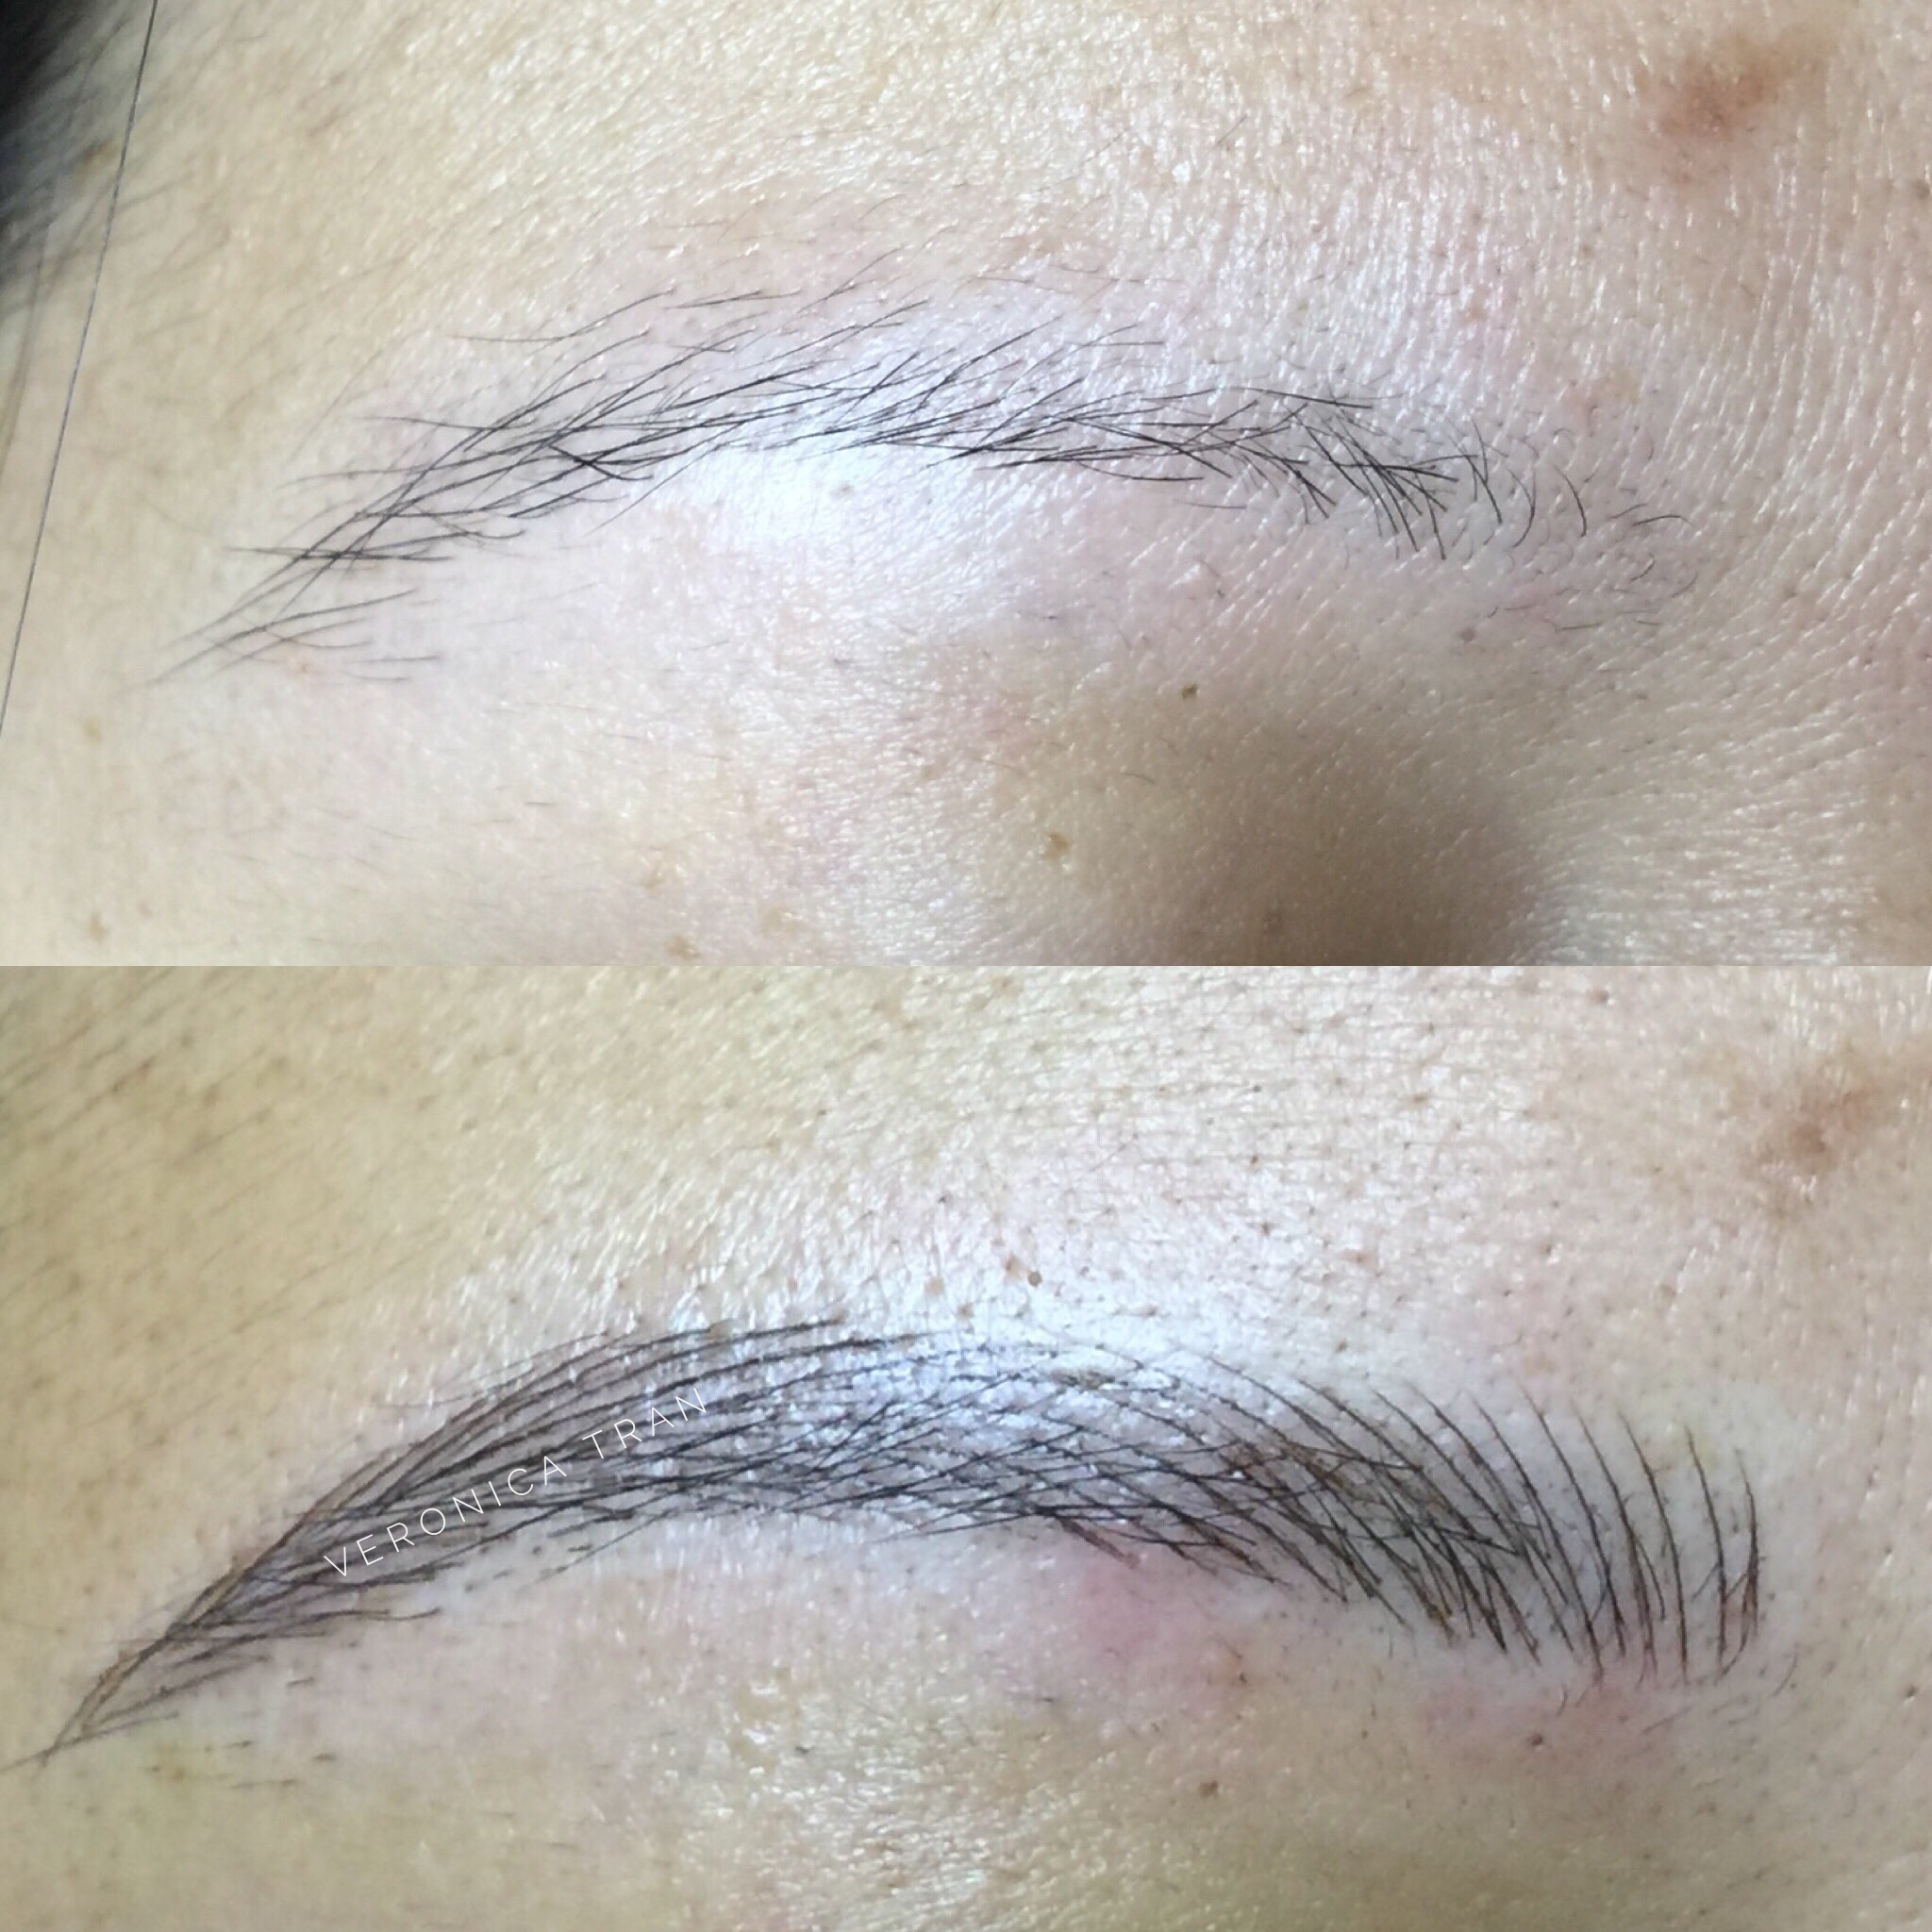 Eyebrow Tattoo With Microblading Technique Microblanding In 2019